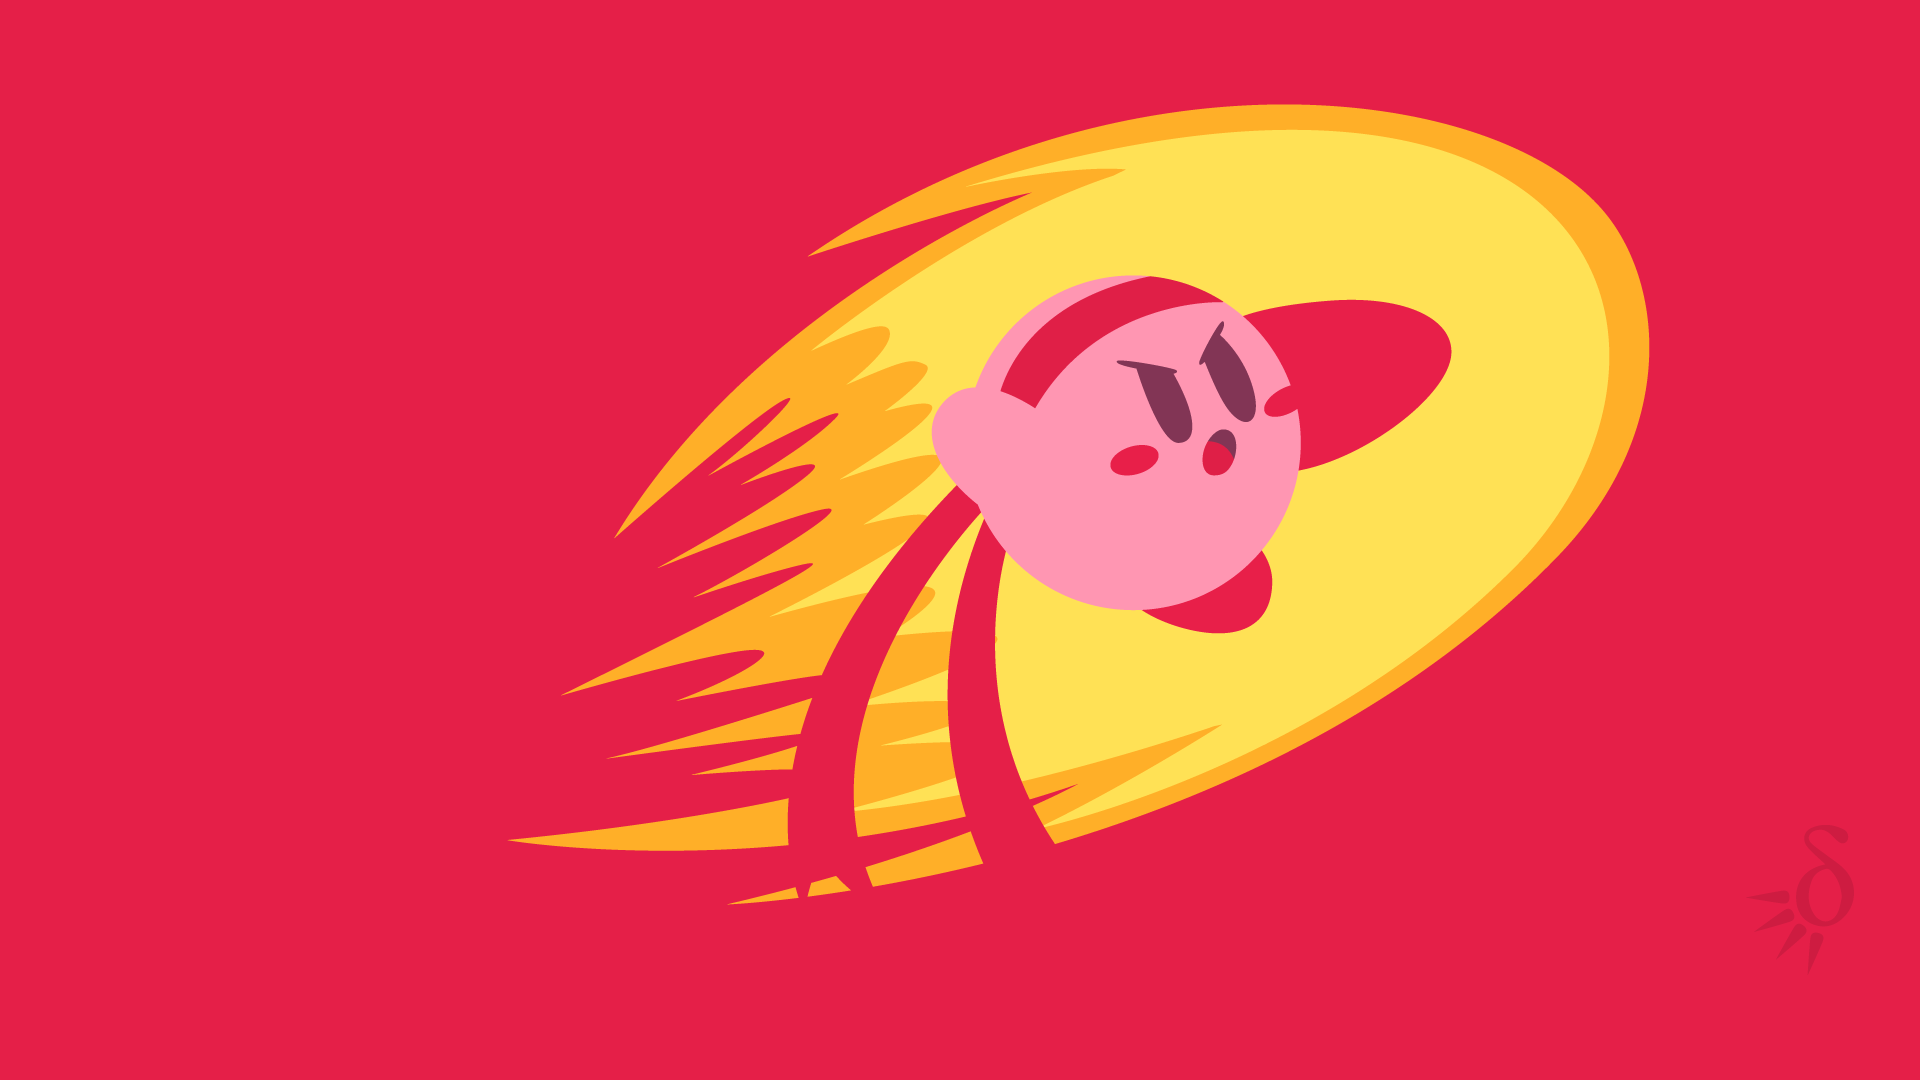 Kirby HD Wallpapers and Background Images   stmednet 1920x1080